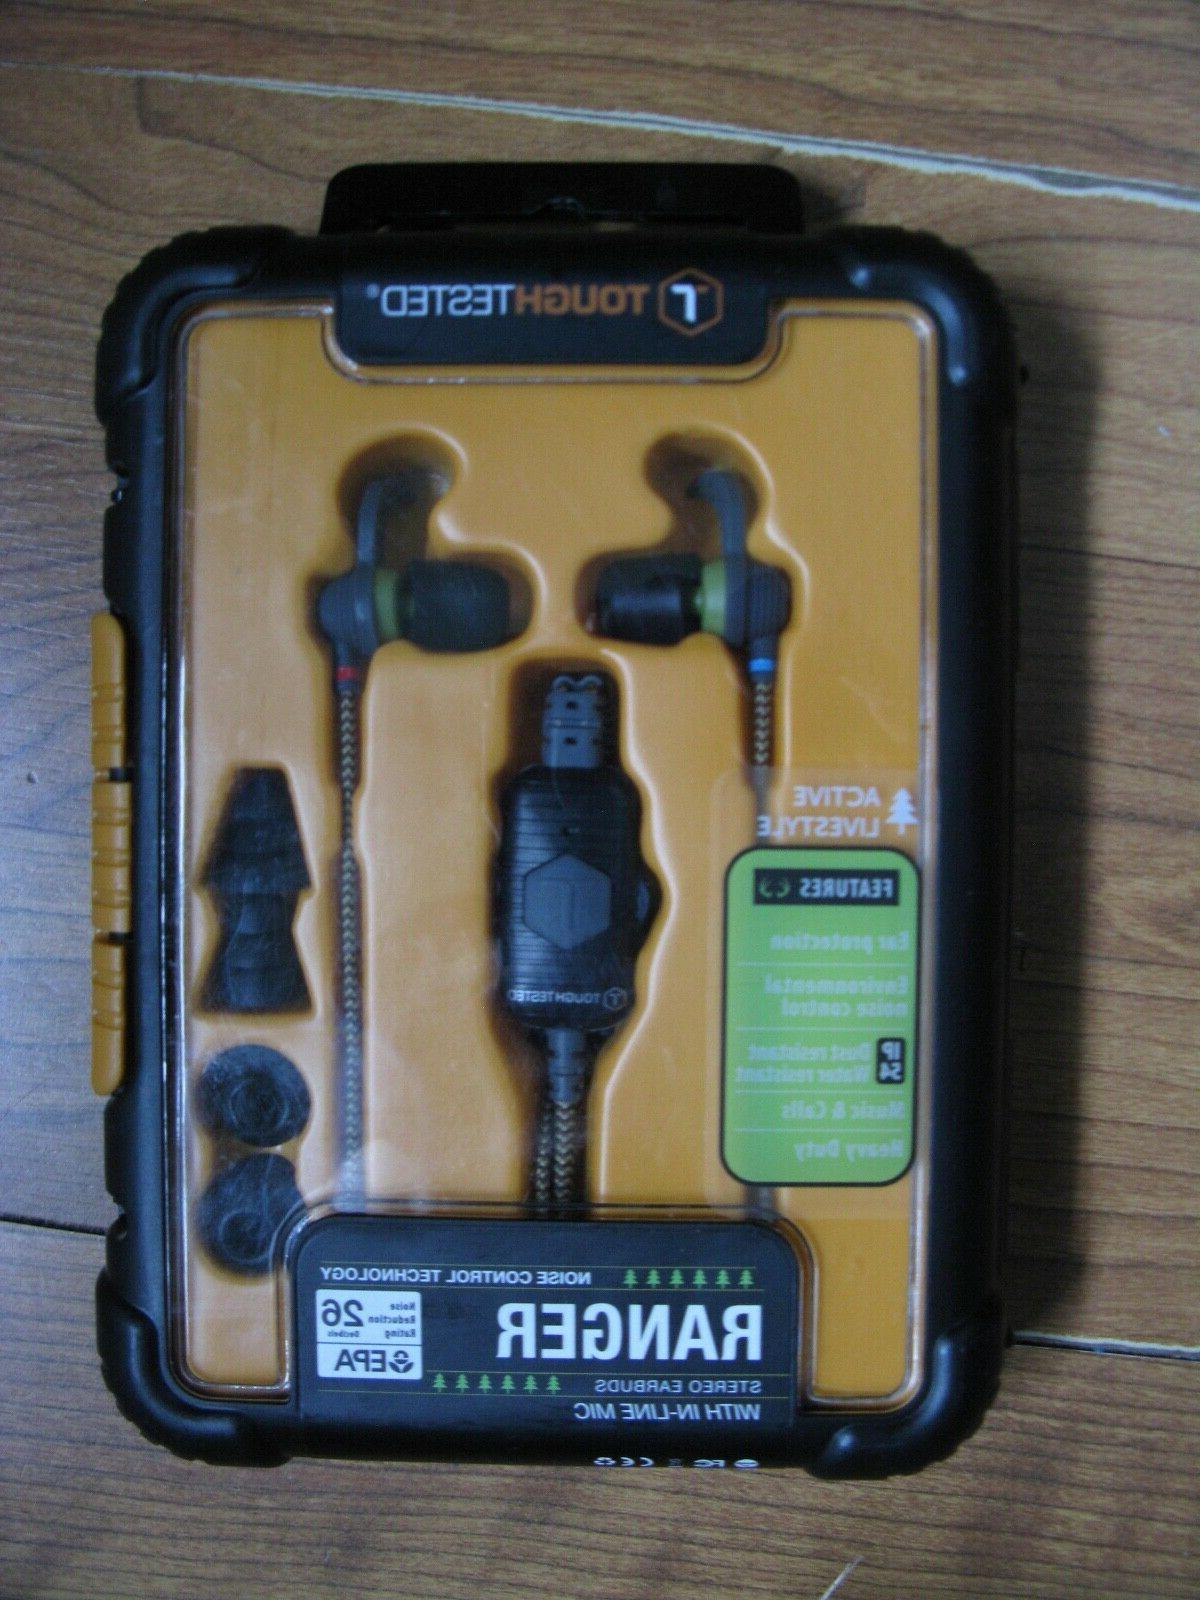 toughtested ranger stereo earbuds with in line